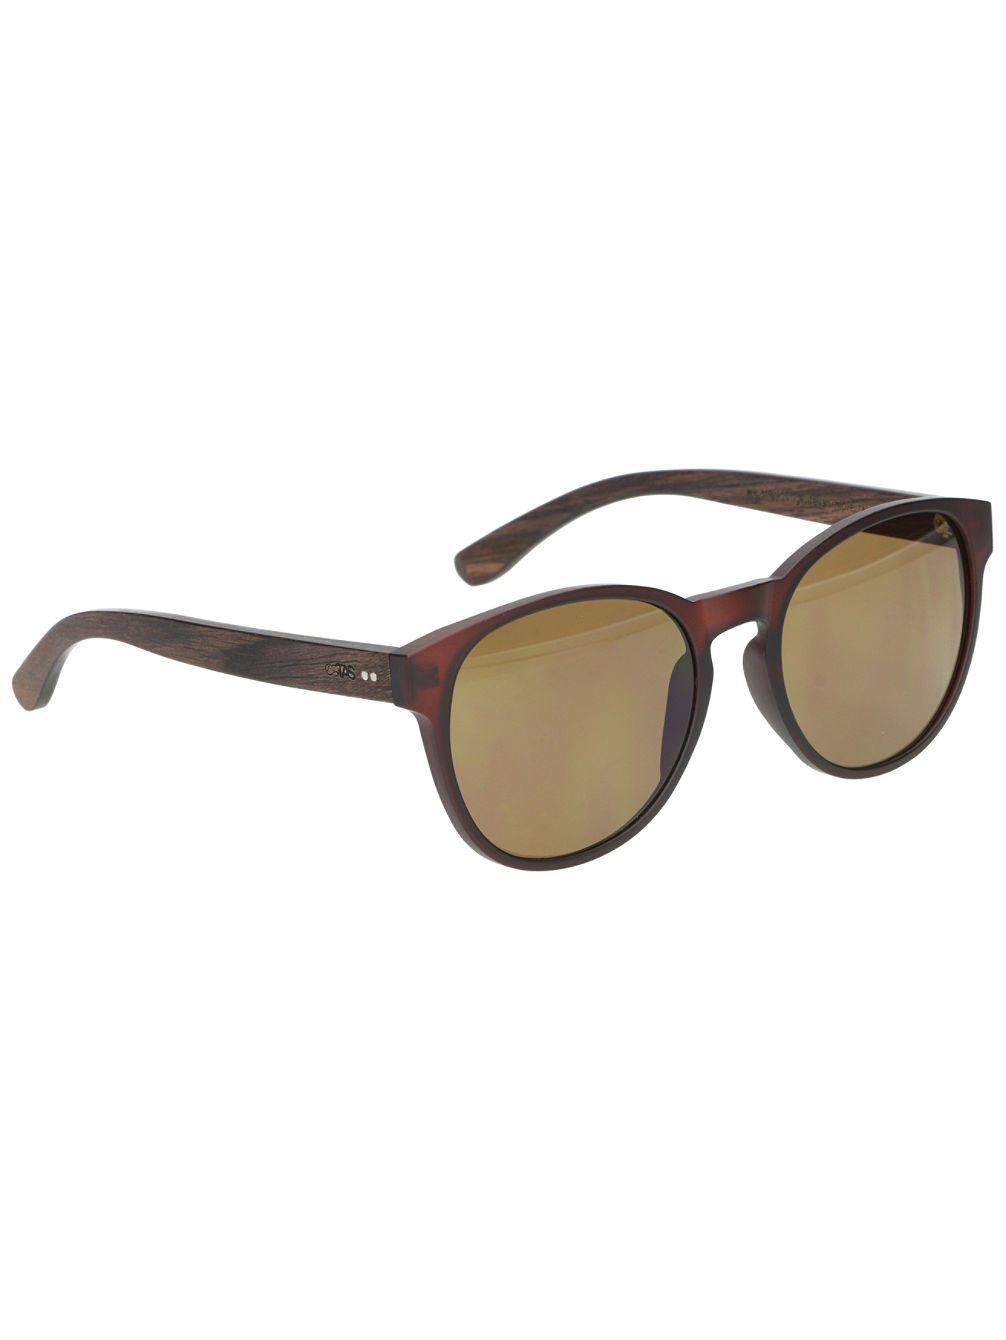 The Gryphon Walnut Sonnenbrille